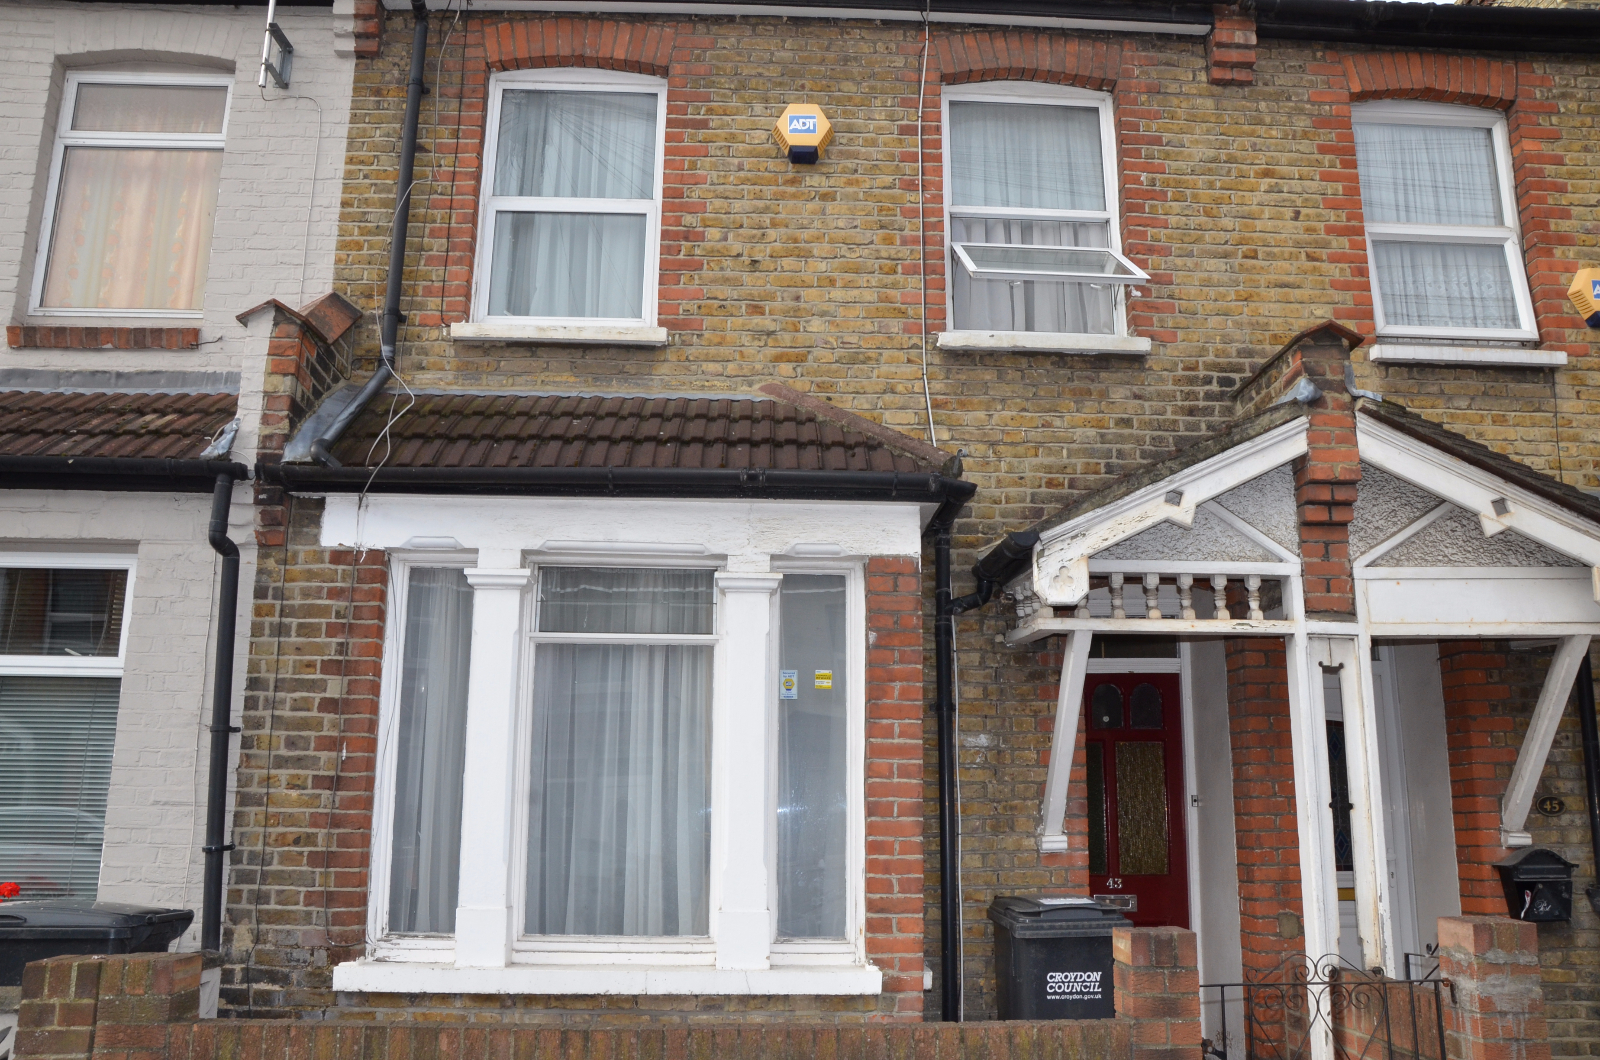 Image of Property for Sale in Thornton Heath